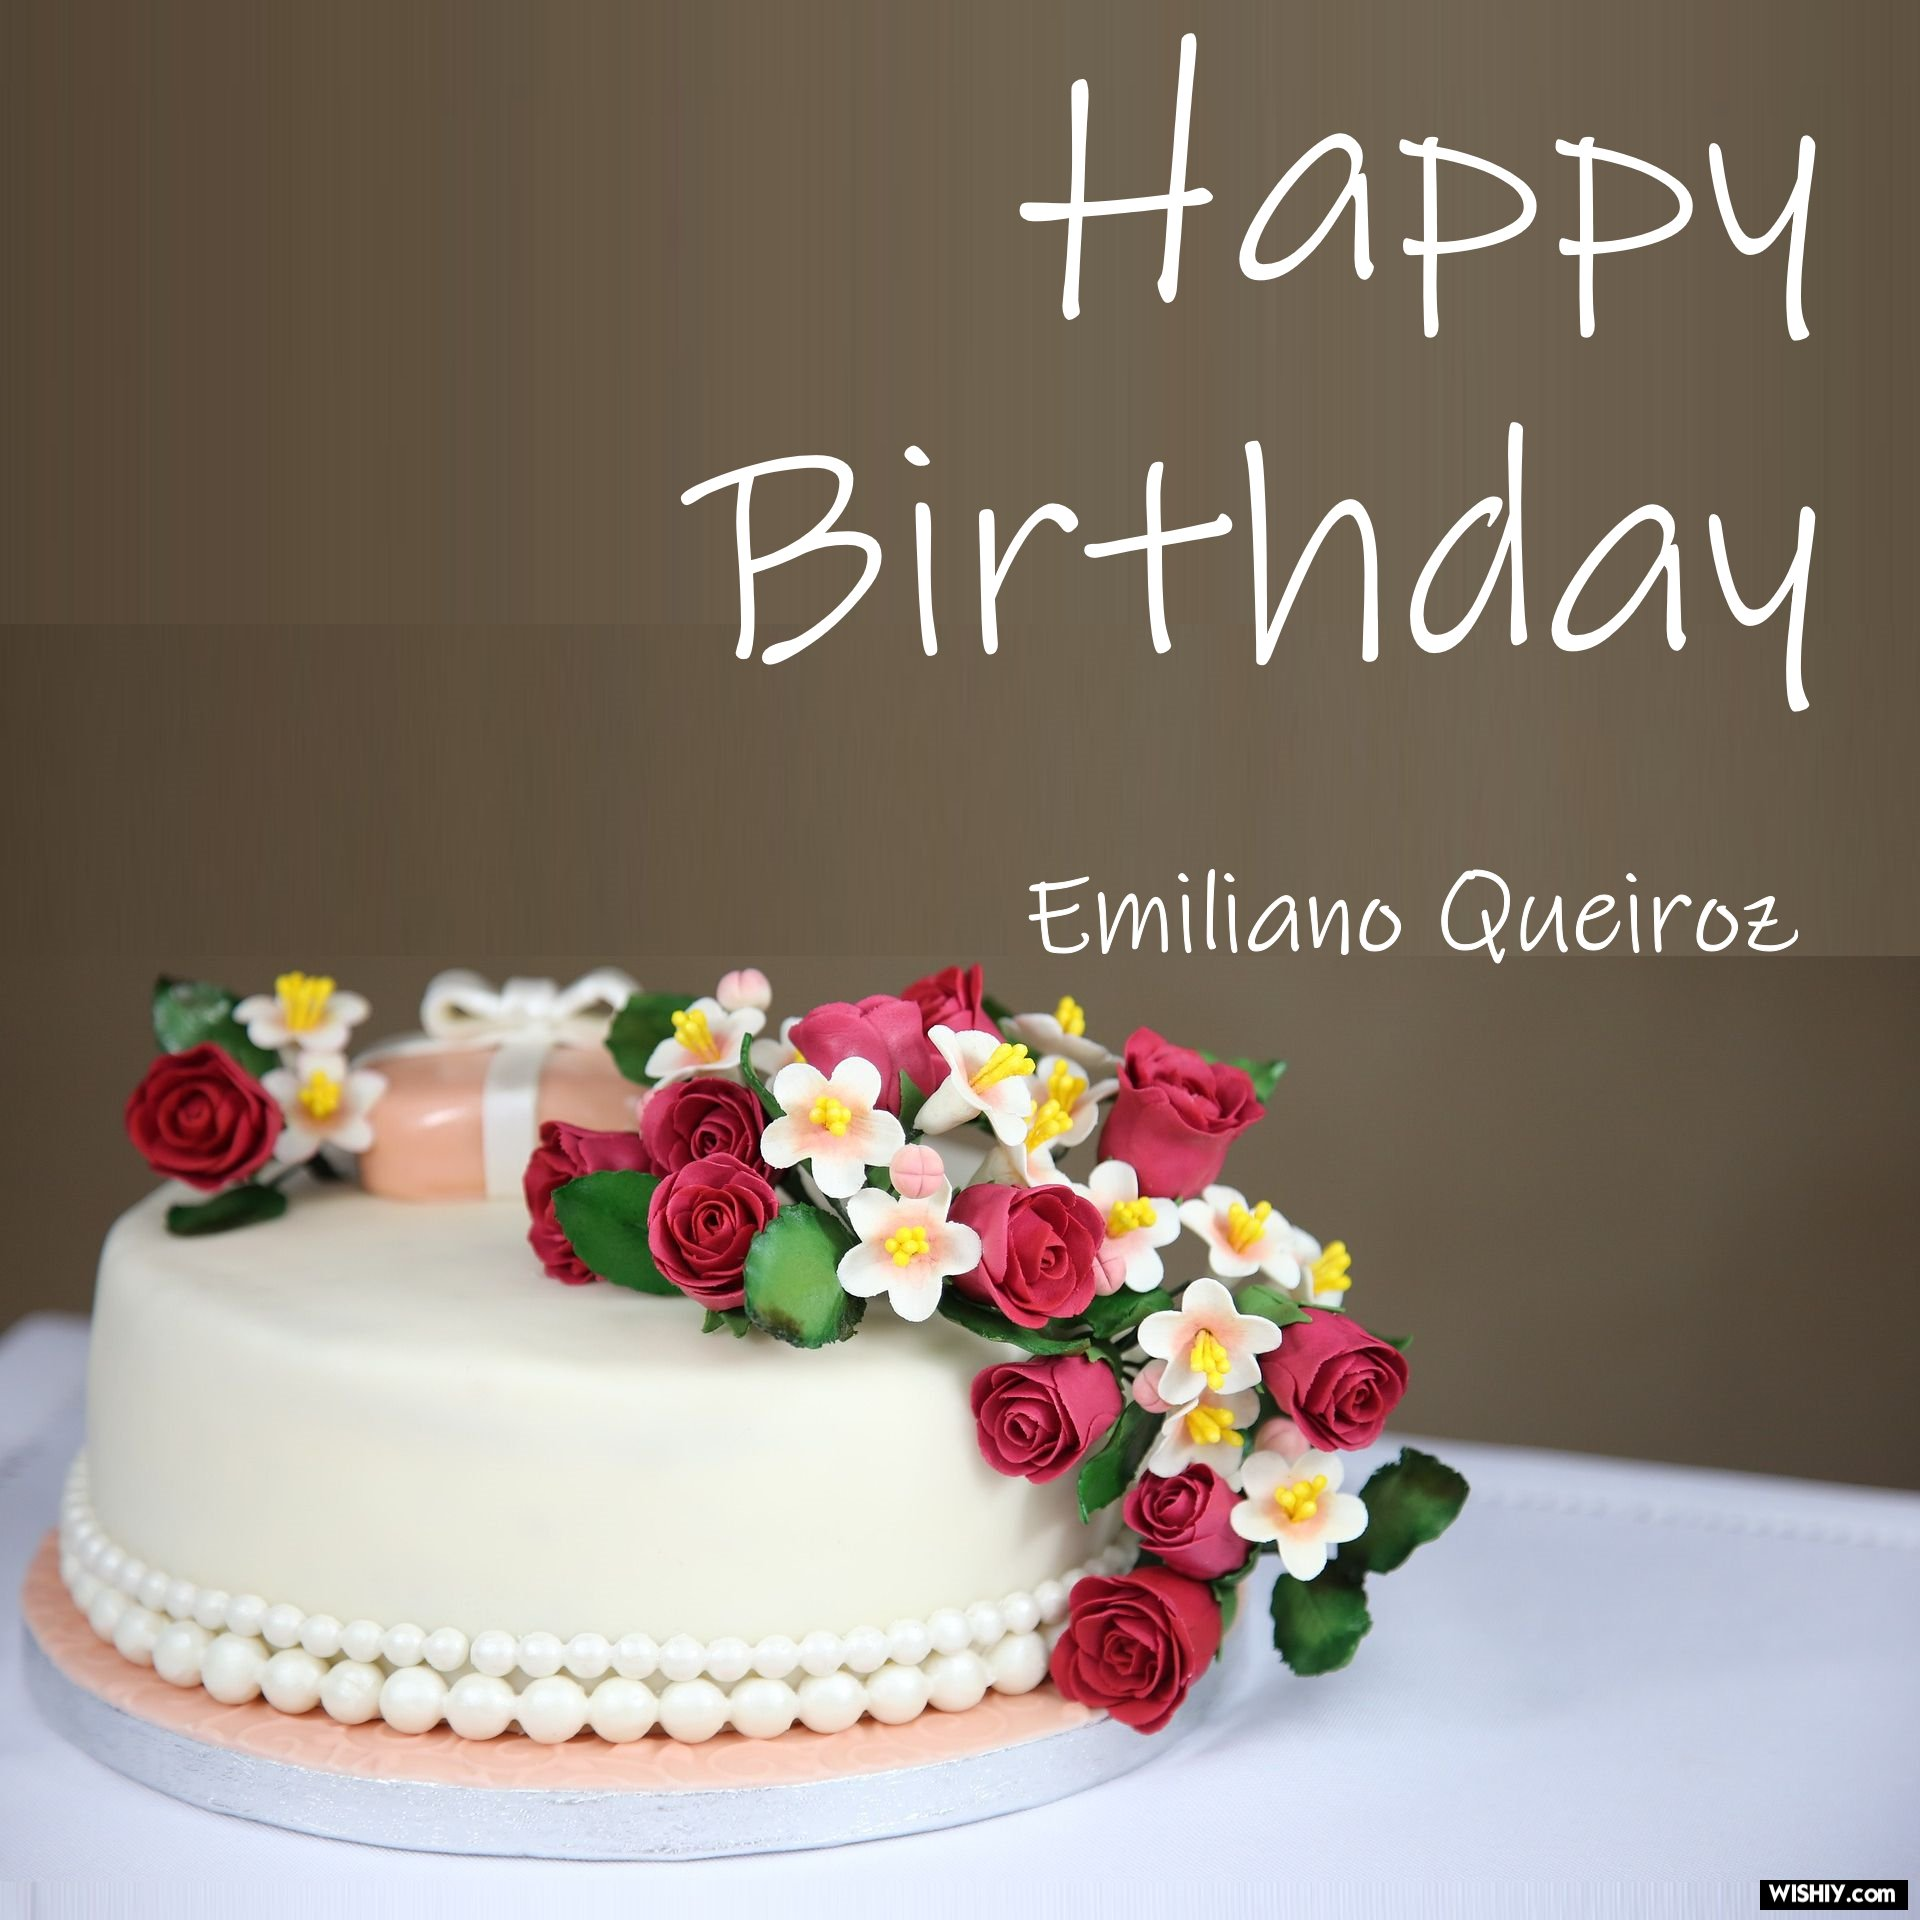 25 Best Birthday Images For Emiliano Queiroz Instant Download 2020